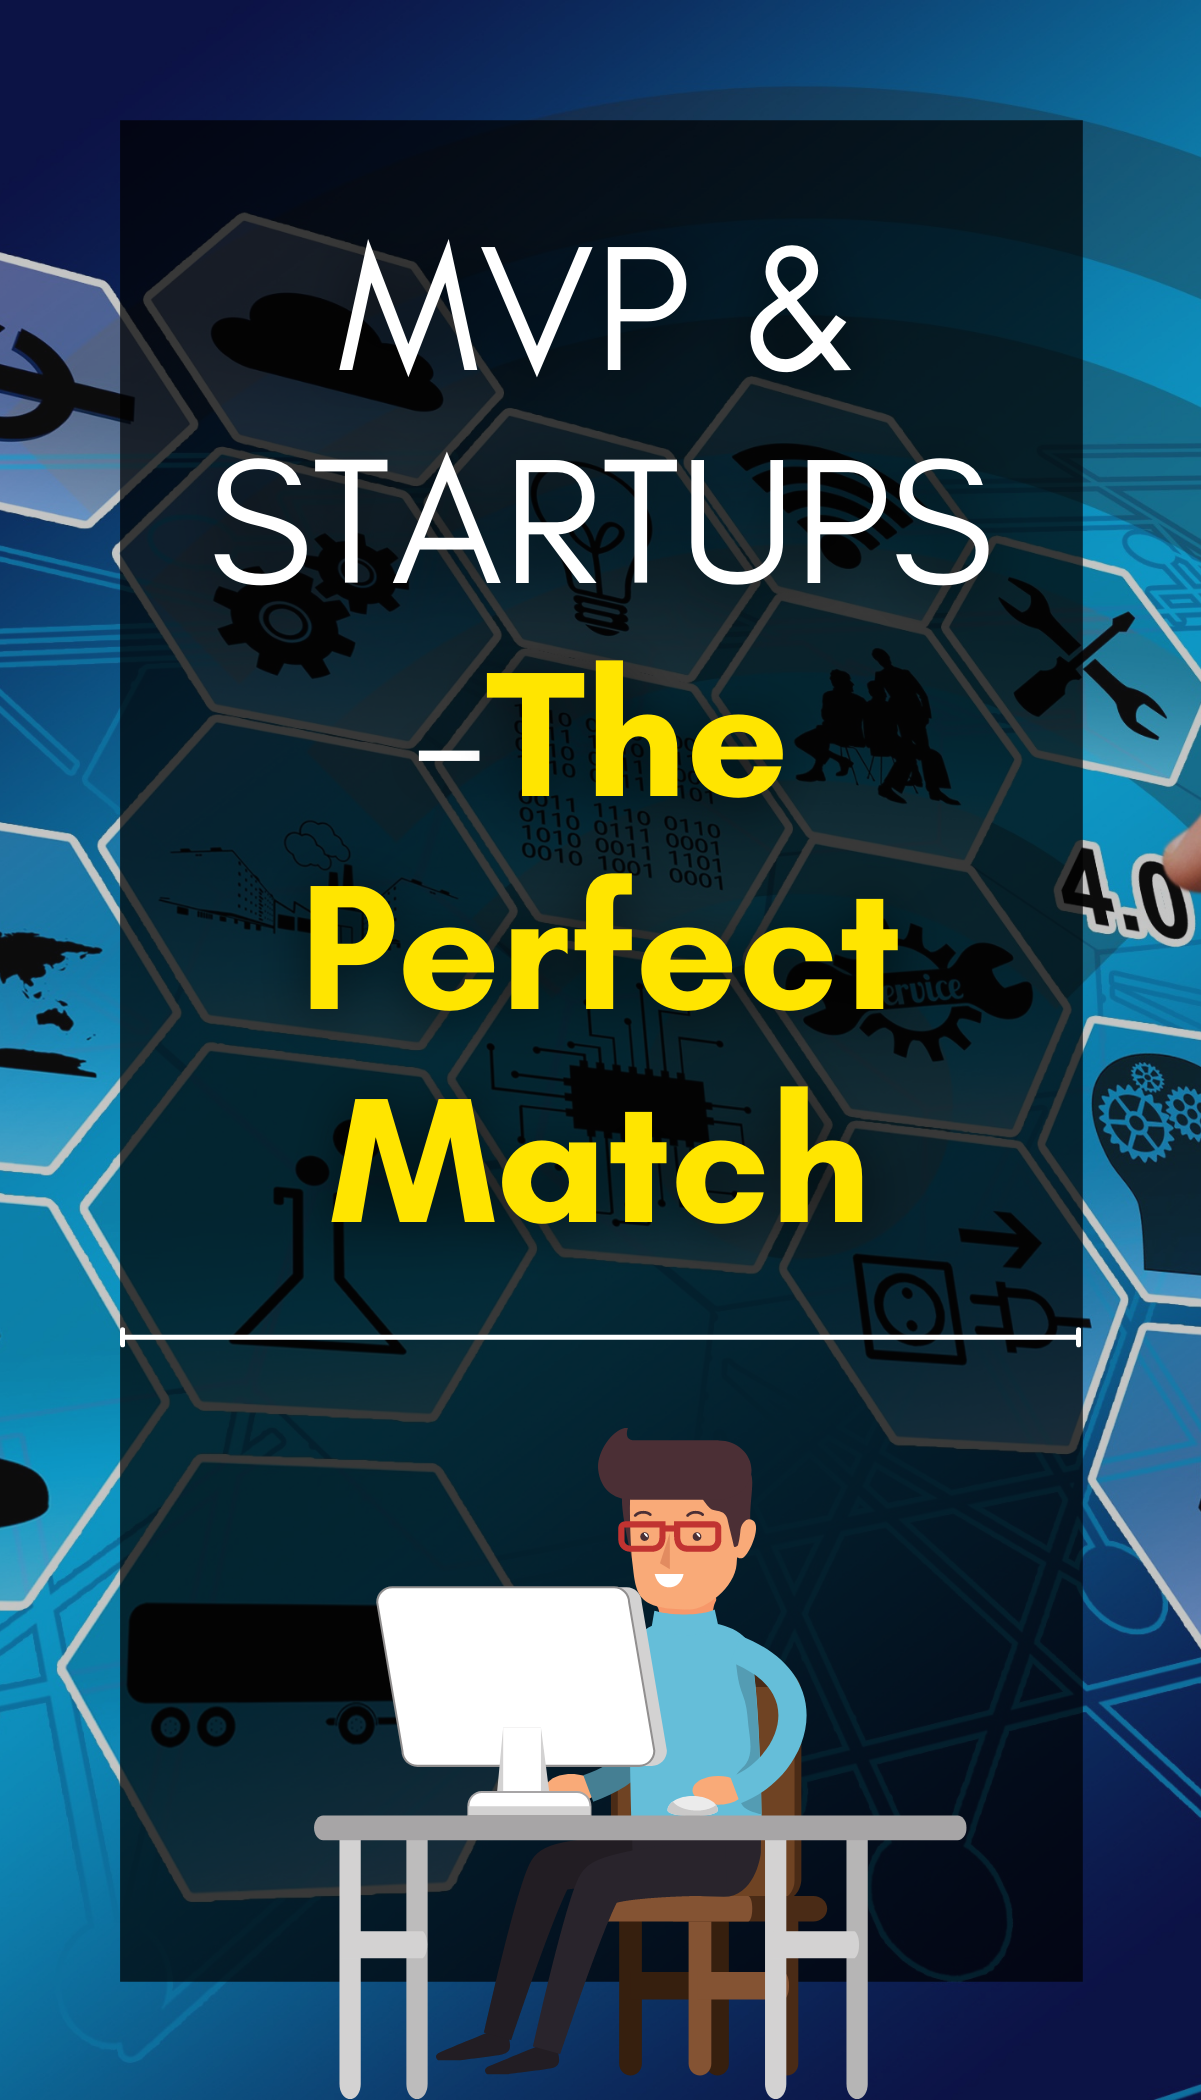 Startups and MVP – The perfect match